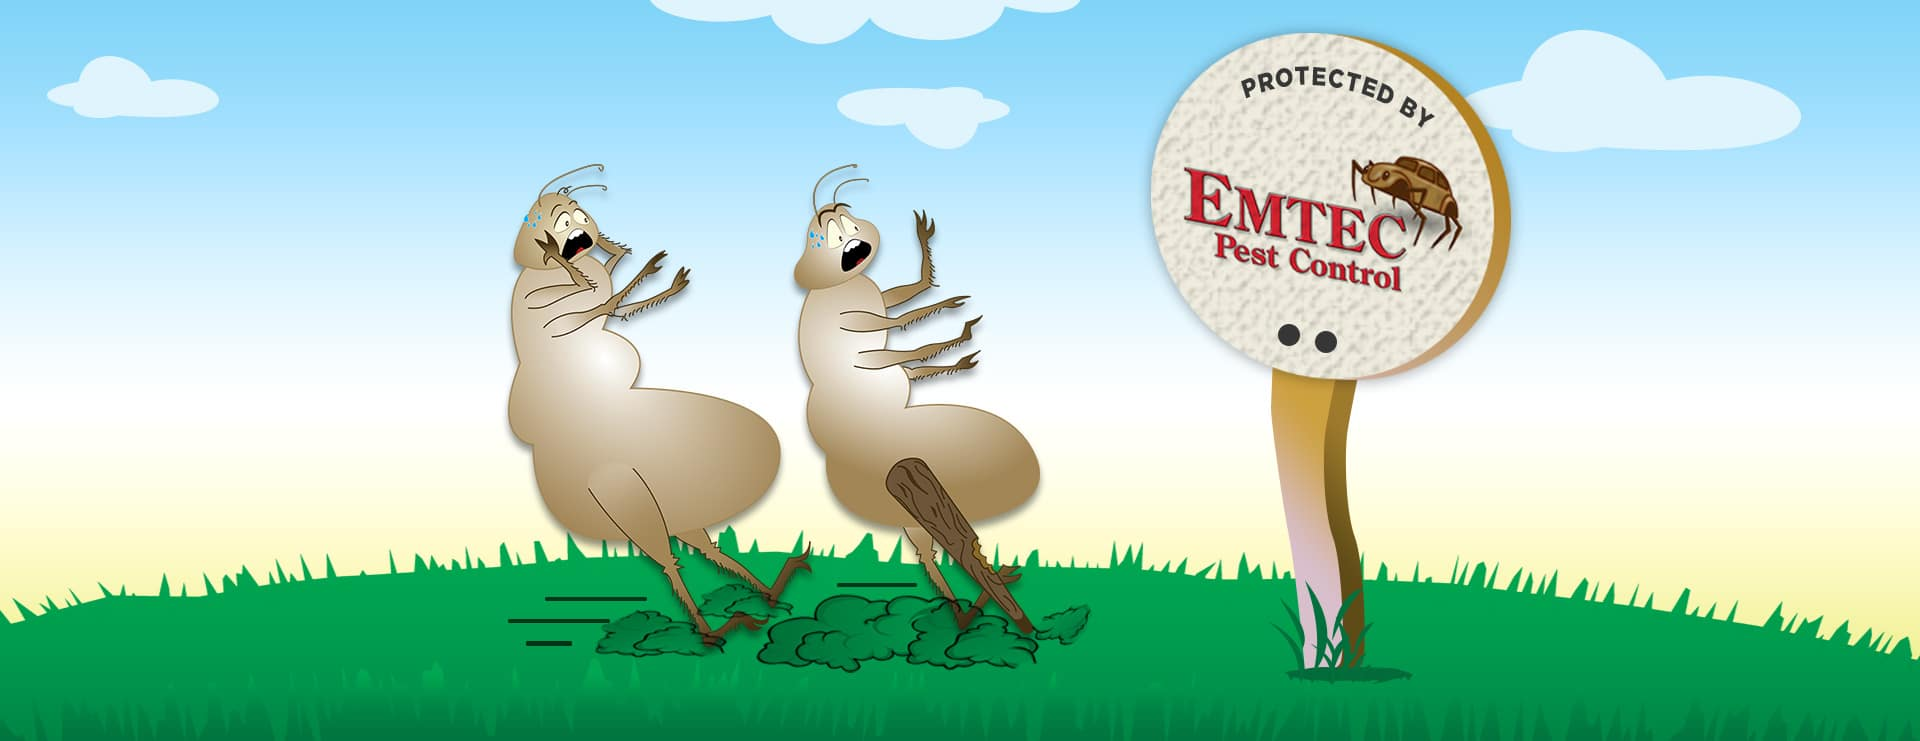 Cartoon Woody and Stump afraid when seeing Protected by Emtec Pest Control sign